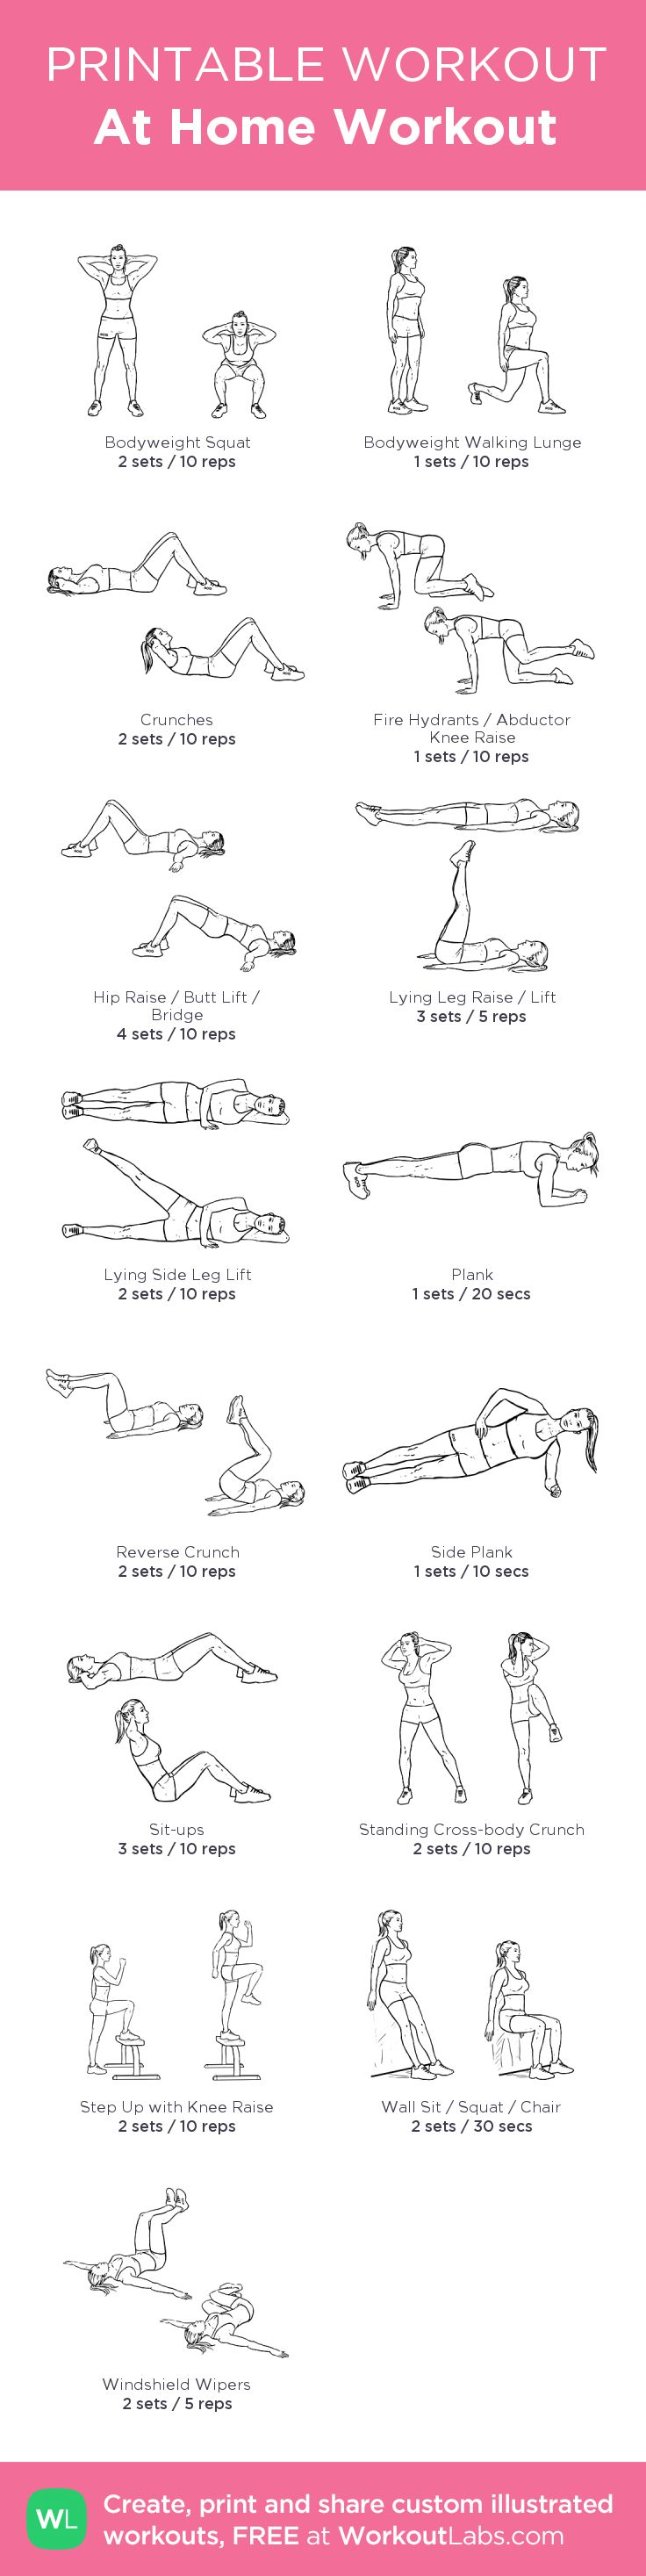 At Home Workout:my visual workout created at WorkoutLabs.com • Click through to customize and download as a FREE PDF! #customworkout